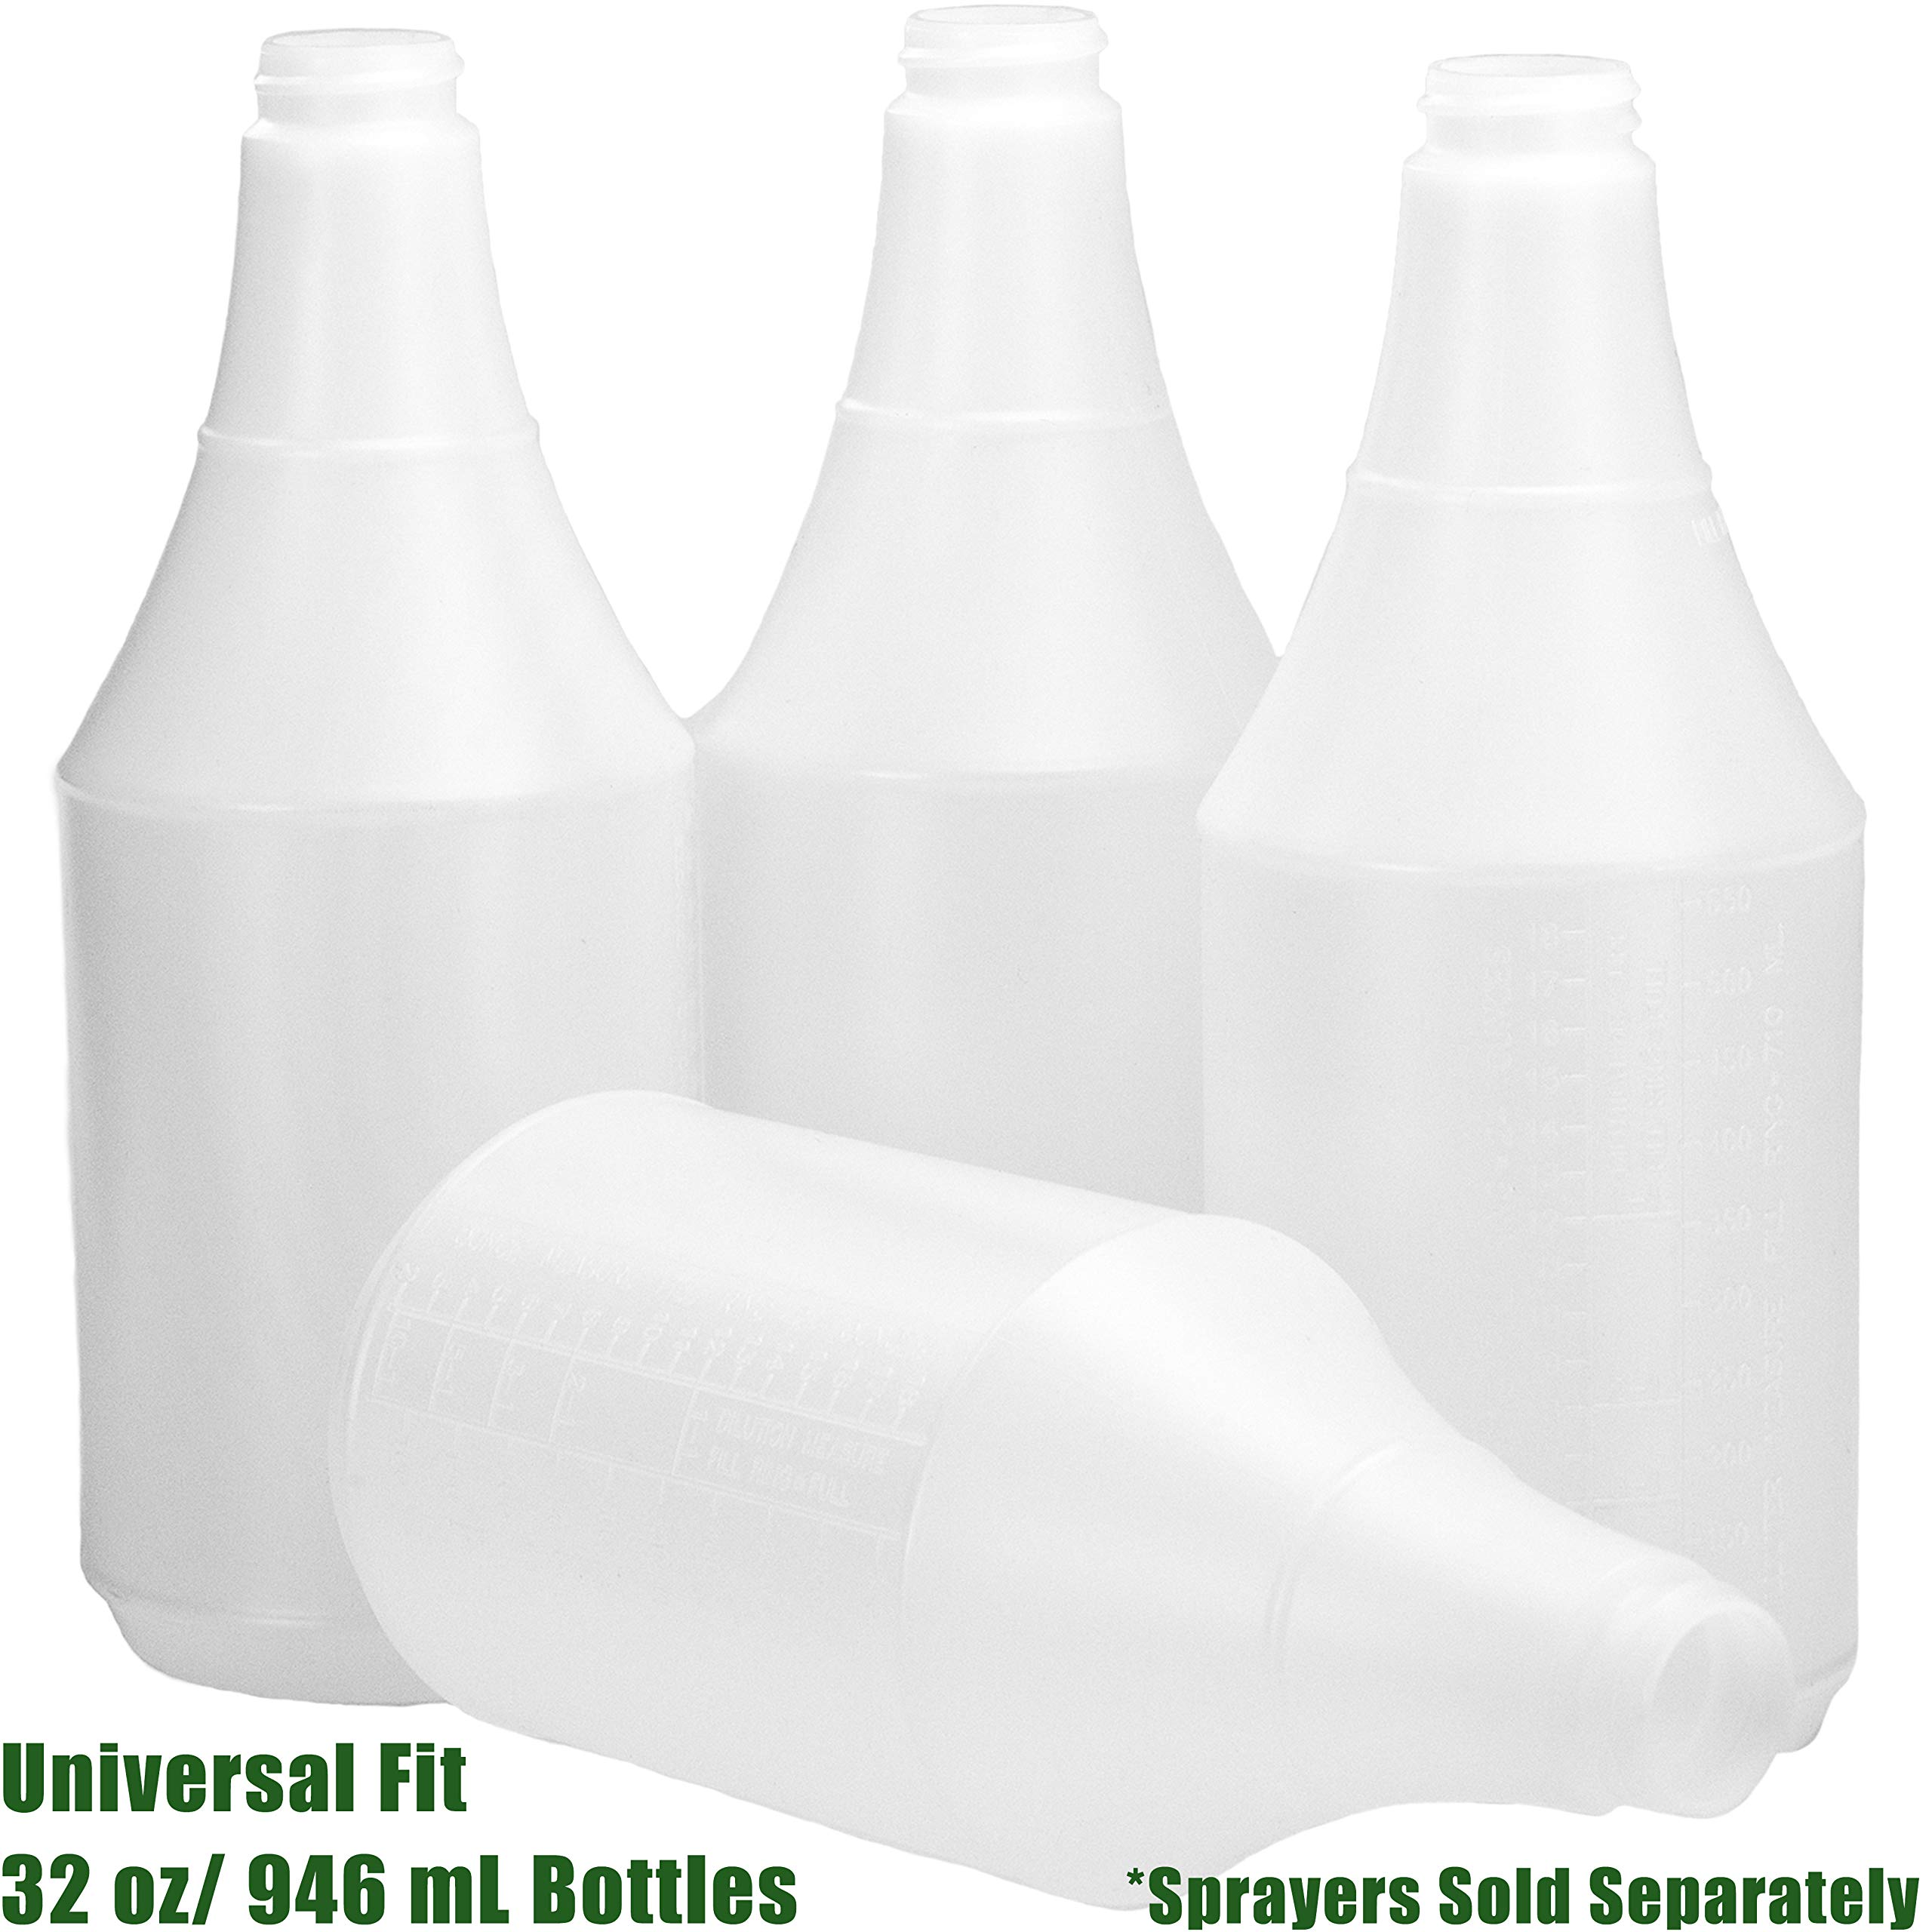 Mop Mob Commercial-Grade Chemical Resistant 32 oz Bottles ONLY 4 Pack Embossed Scale for Measuring. Pair with Industrial Spray Heads for Auto/Car Detailing, Janitorial Cleaning Supply or Lawn Care by Mop Mob